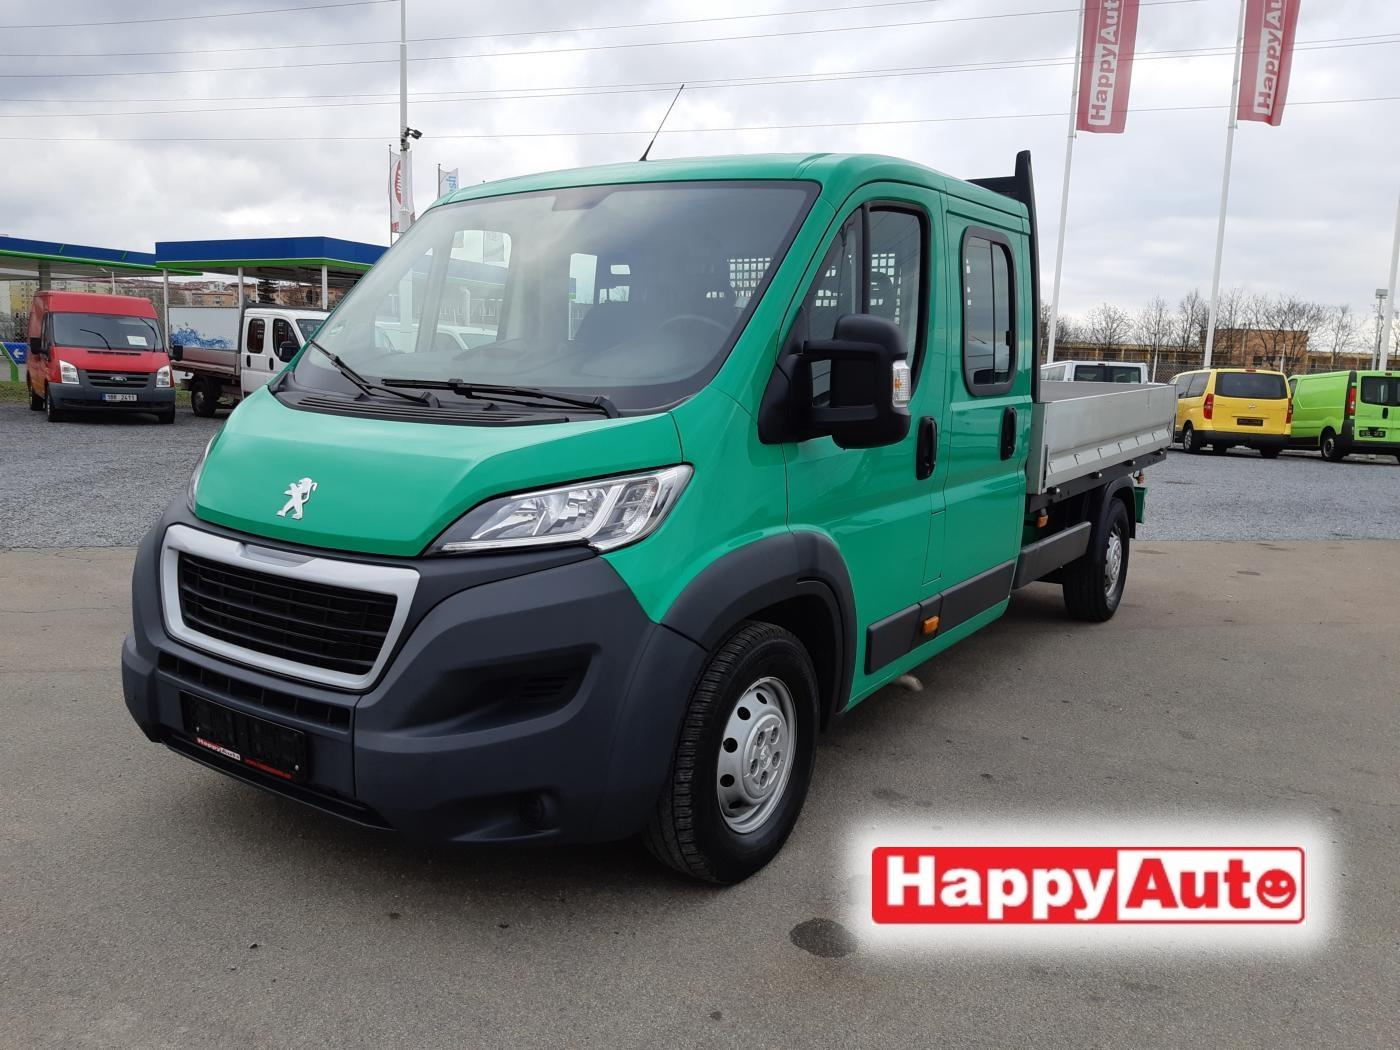 Peugeot Boxer 2.2 HDI 110kW DoubleCab valník